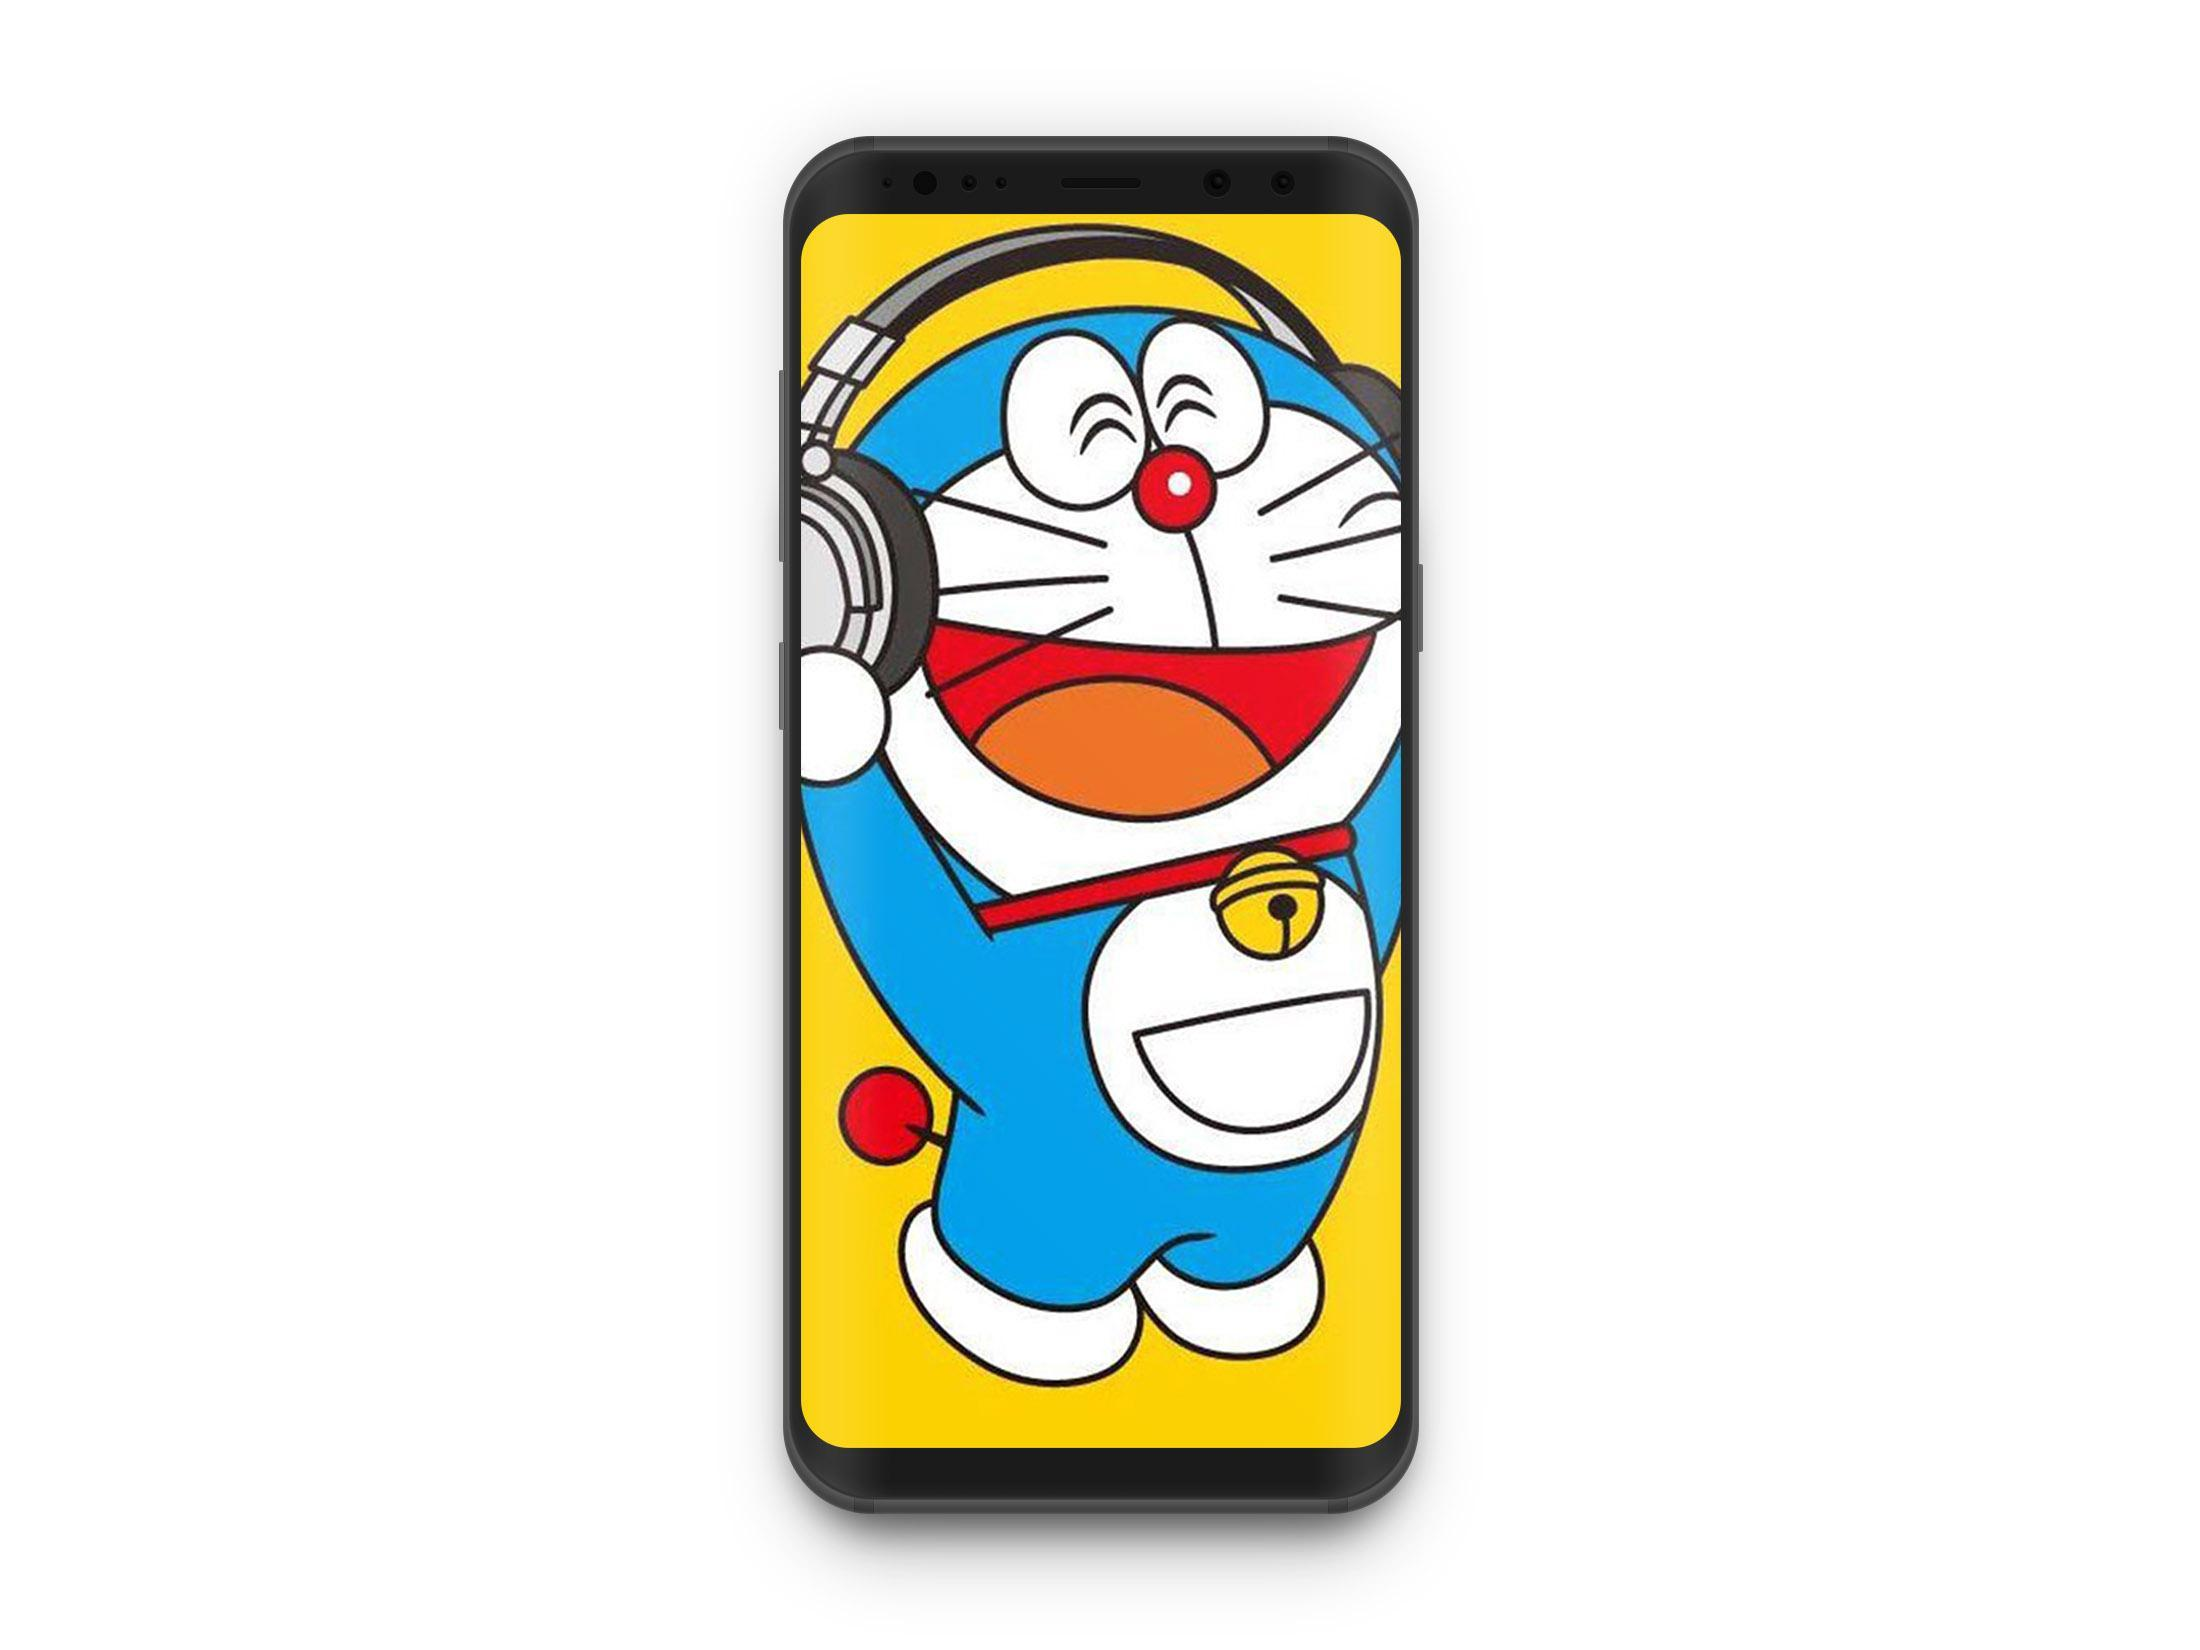 Doraemon-cartoon Wallpaper HD for Android - APK Download